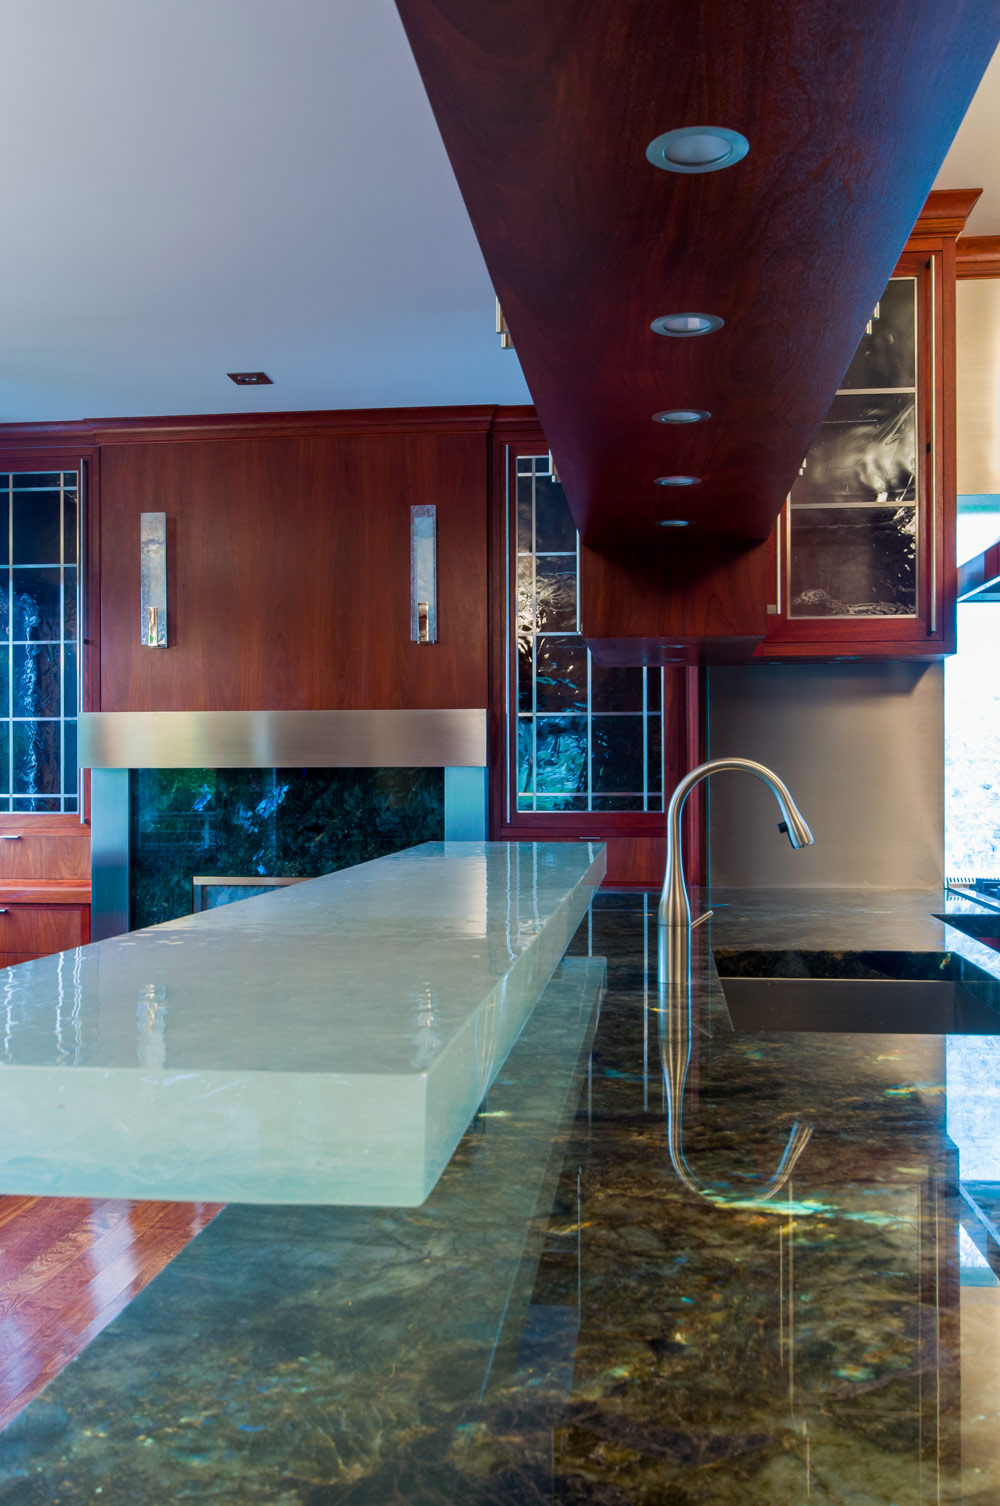 Seattle Residential Architect TCA Architecture designed this high end residential property in Capitol Hill